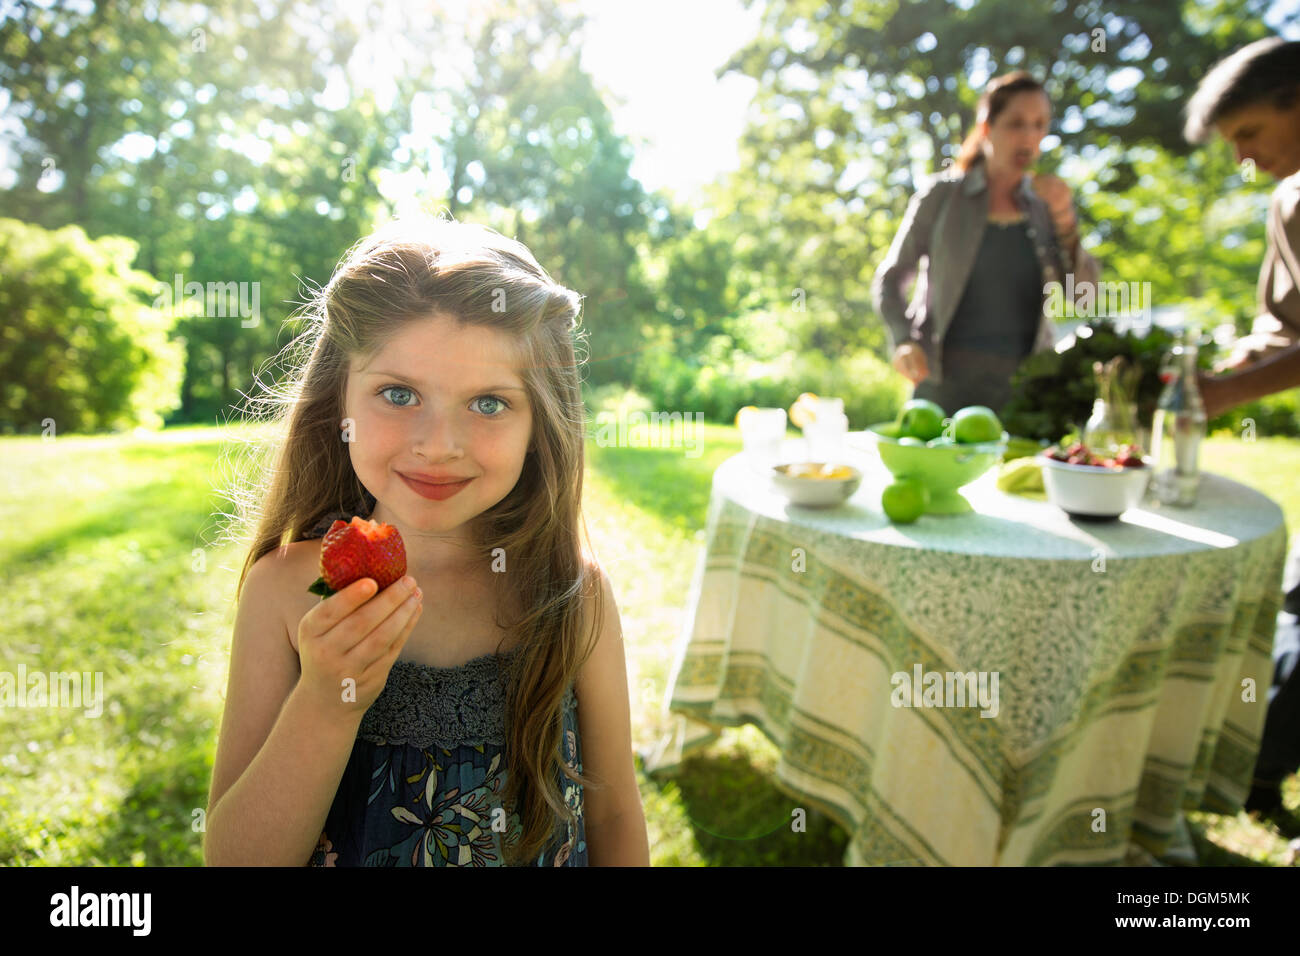 A young girl holding a large fresh organically produced strawberry fruit. Two adults beside a round table. - Stock Image